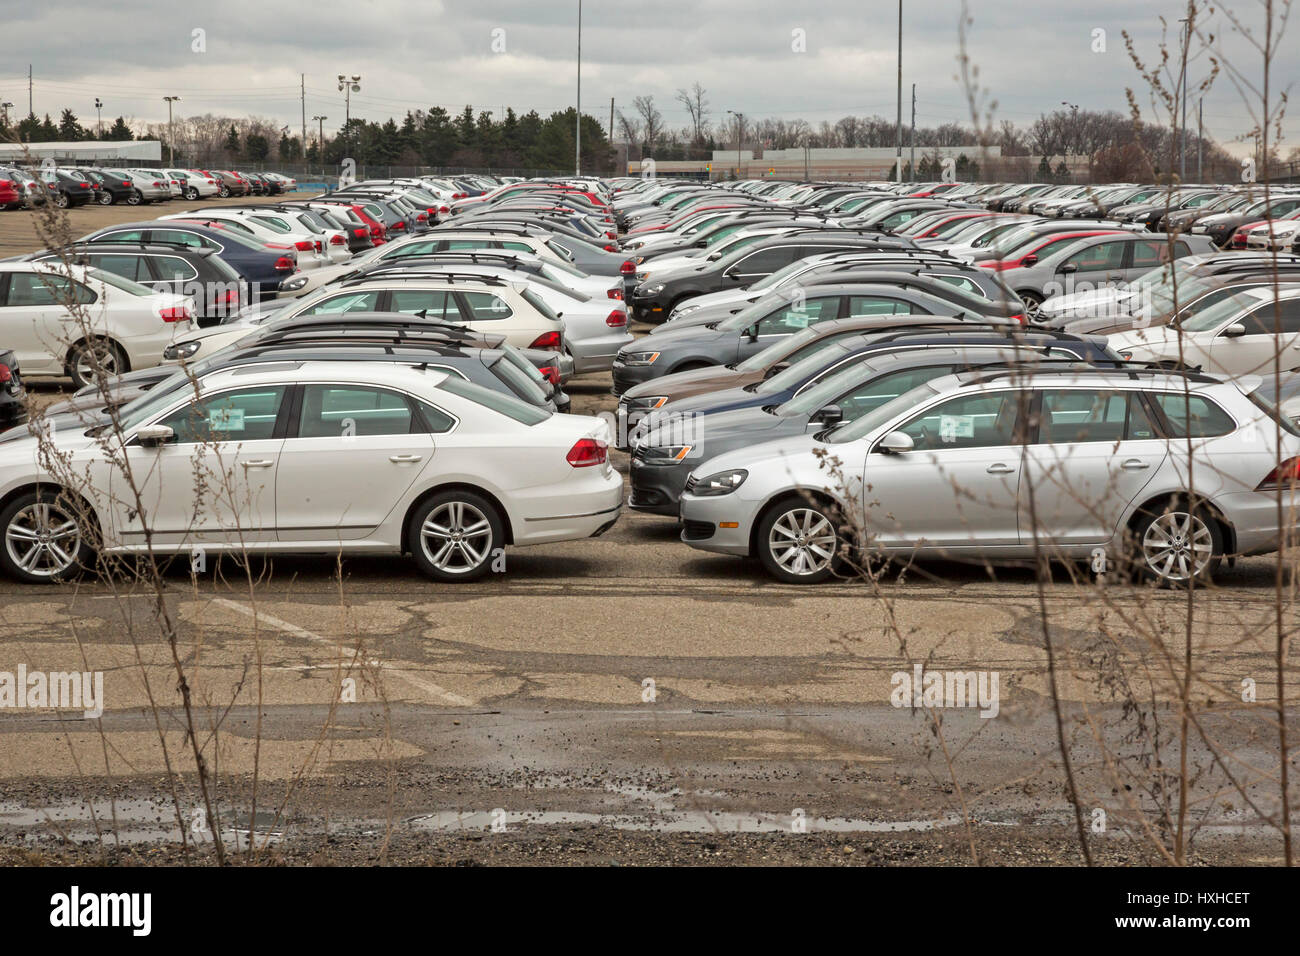 Pontiac, Michigan - Thousands of Volkswagen diesel vehicles are parked at the vacant Pontiac Silverdome. VW bought - Stock Image